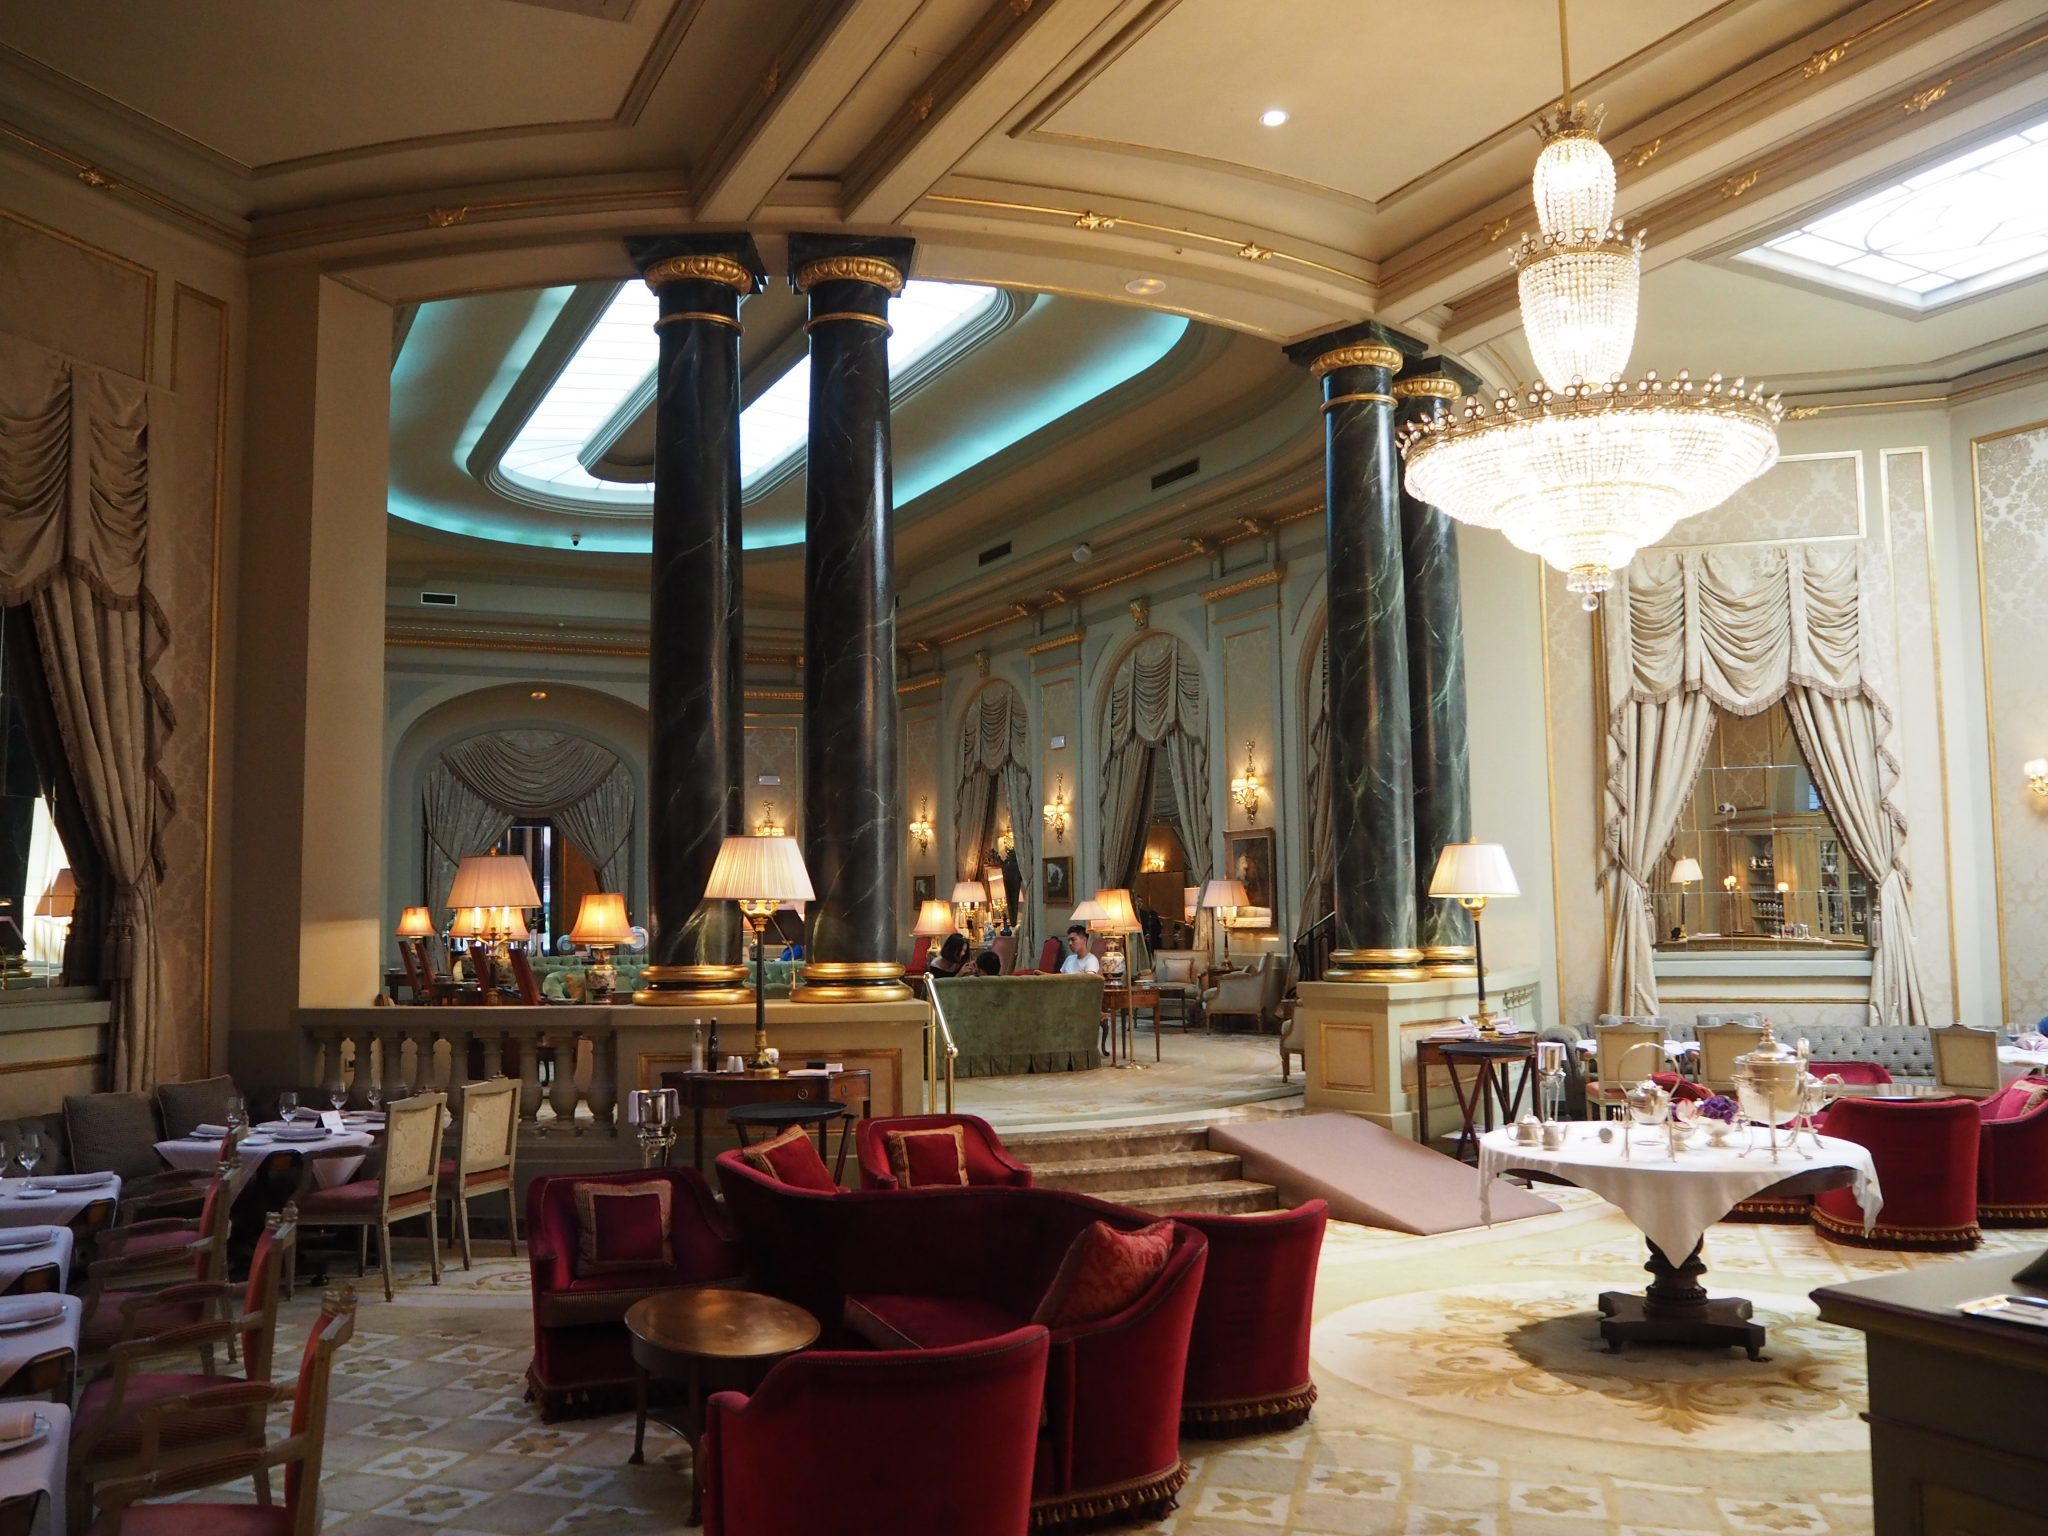 Afternoon Tea at the El Palace Hotel Barcelona